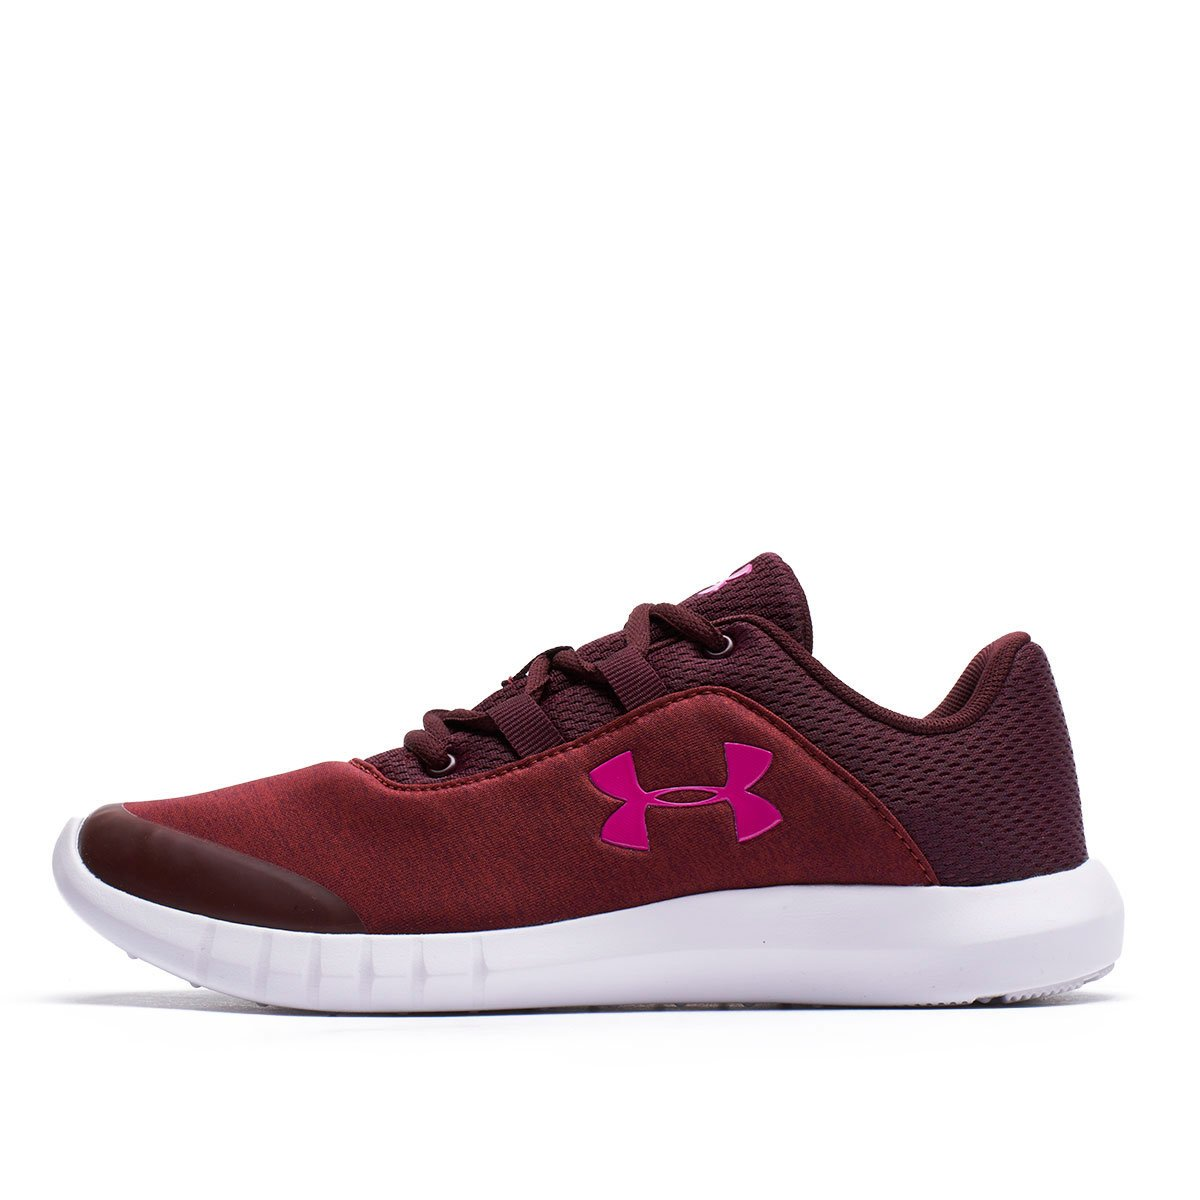 Under Armour Women's UA Mojo Trainers Red 192006705888 - 3 UK Red